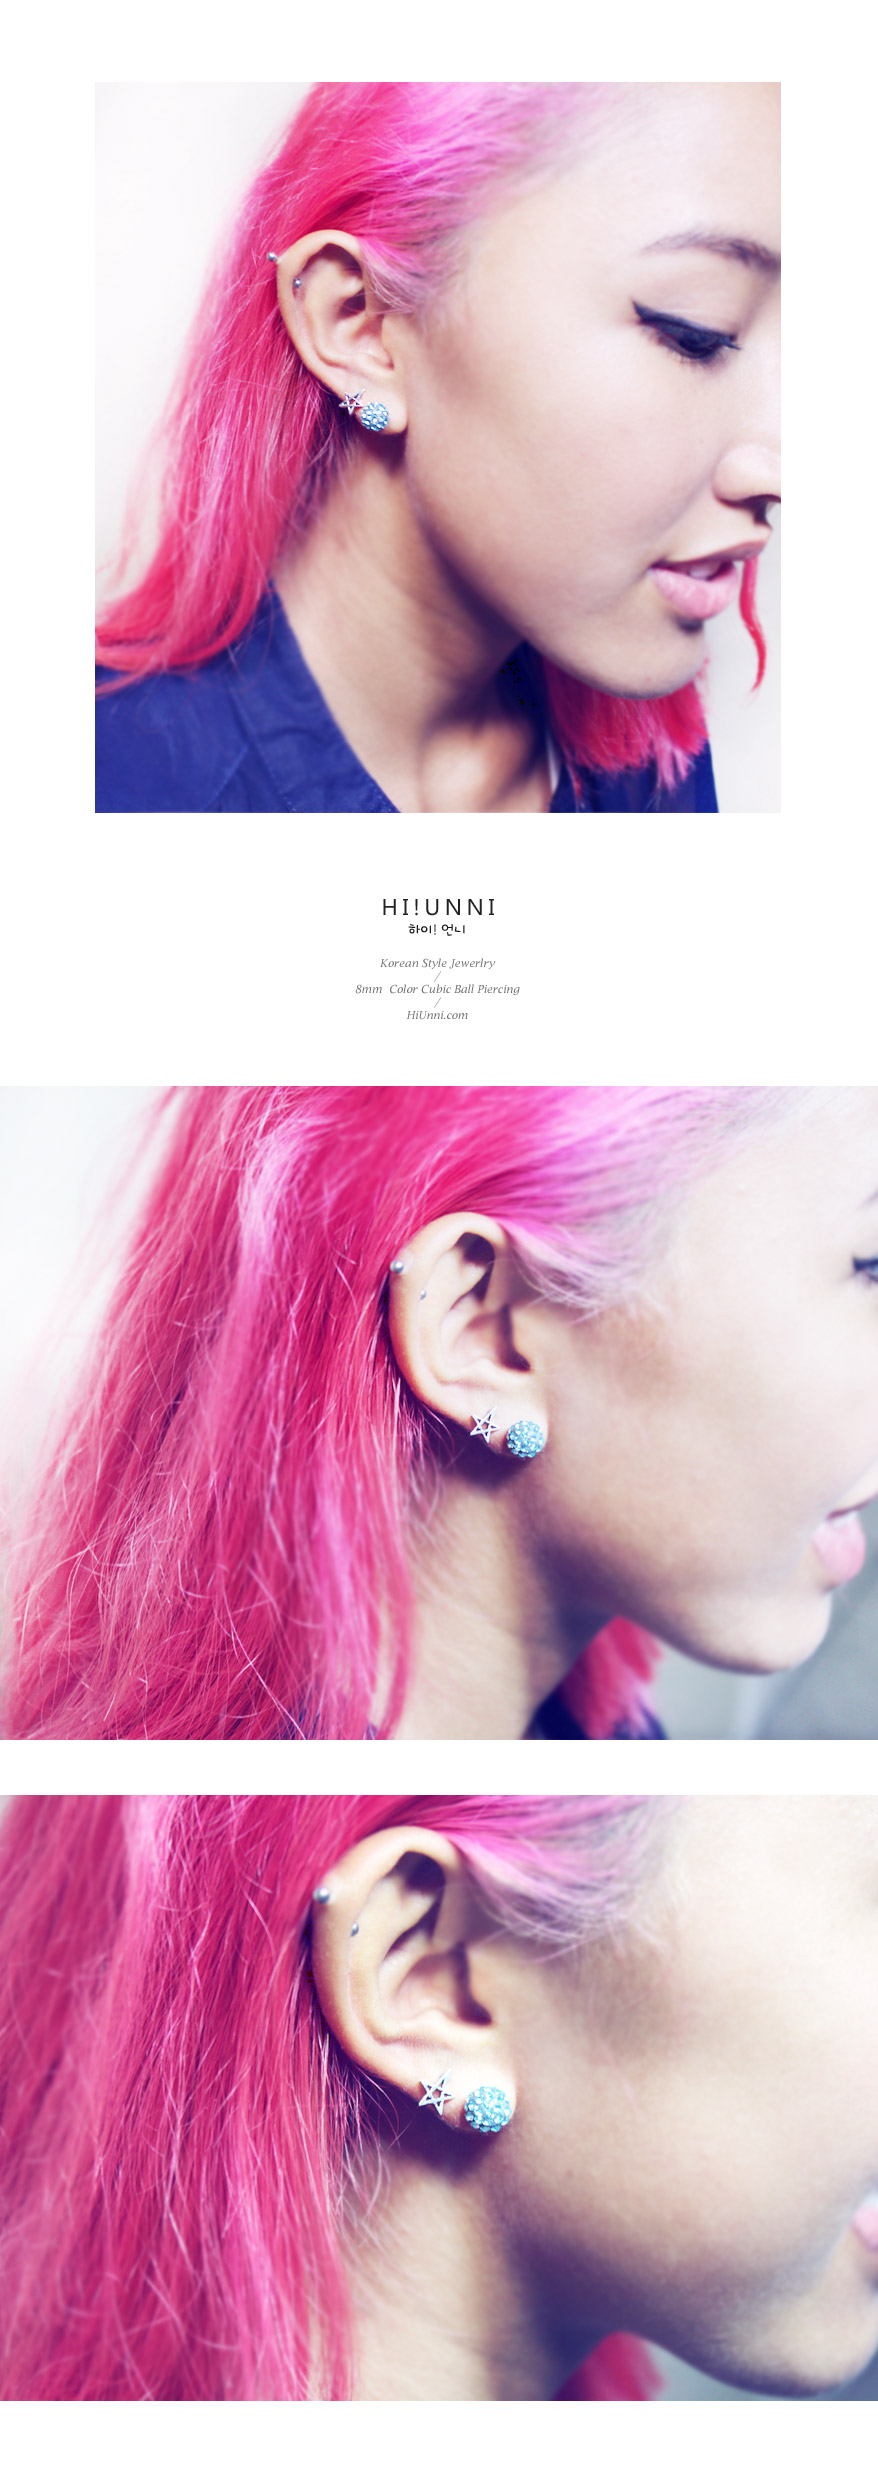 8mm_ear_studs_piercing_Cartilage_korean_asian_style_cubicball_barbell_5